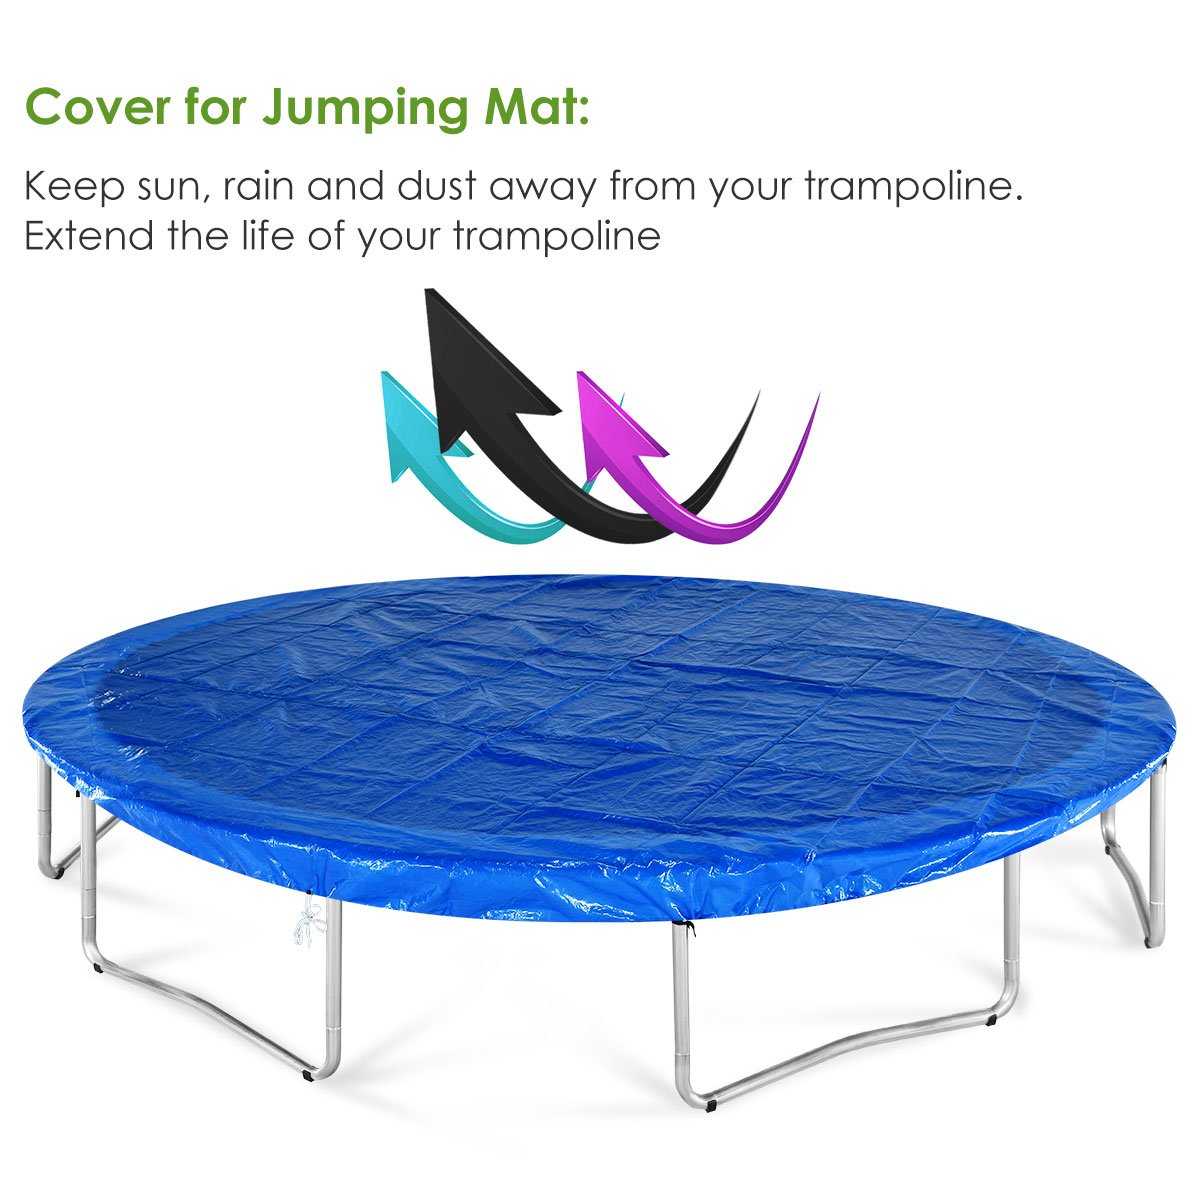 Zupapa Kids Trampoline, TUV Approved Trampoline 10ft, with Safety Enclosure Net, Heavy Duty Indoor Outdoor Round Trampoline for Kids by Zupapa (Image #6)